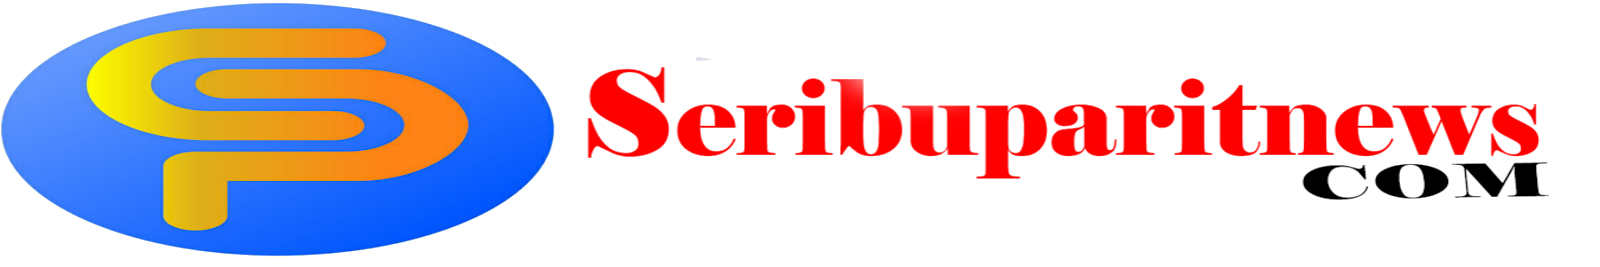 Seribuparitnews.com